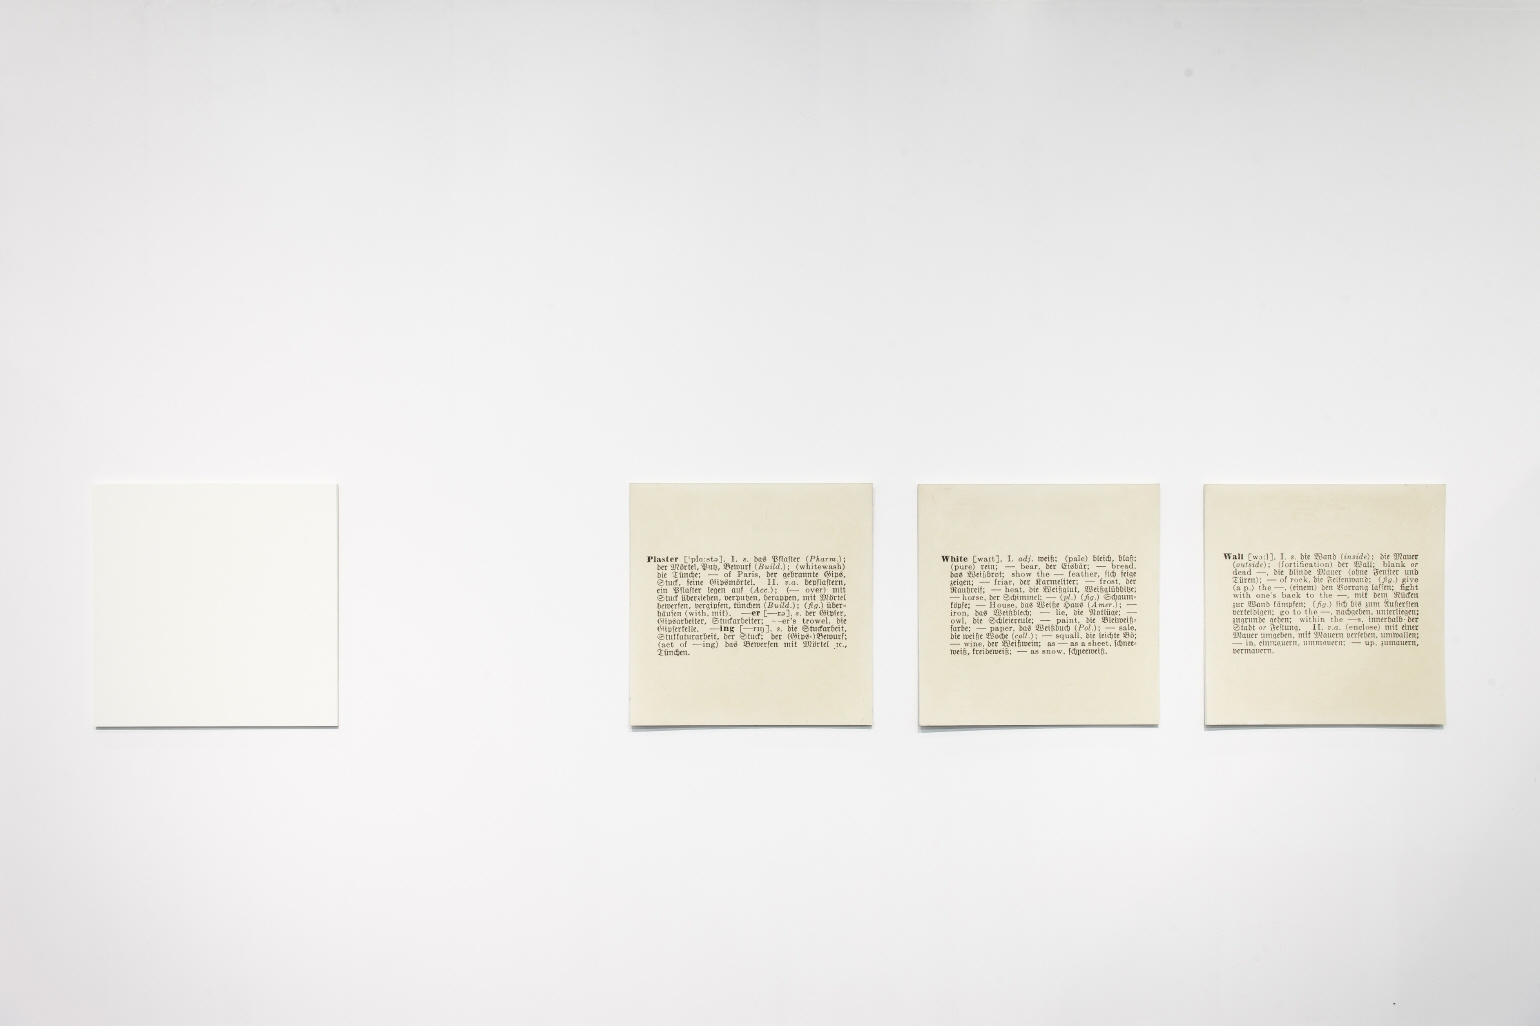 Wall-One and Five [Engl.-Germ.], 1965